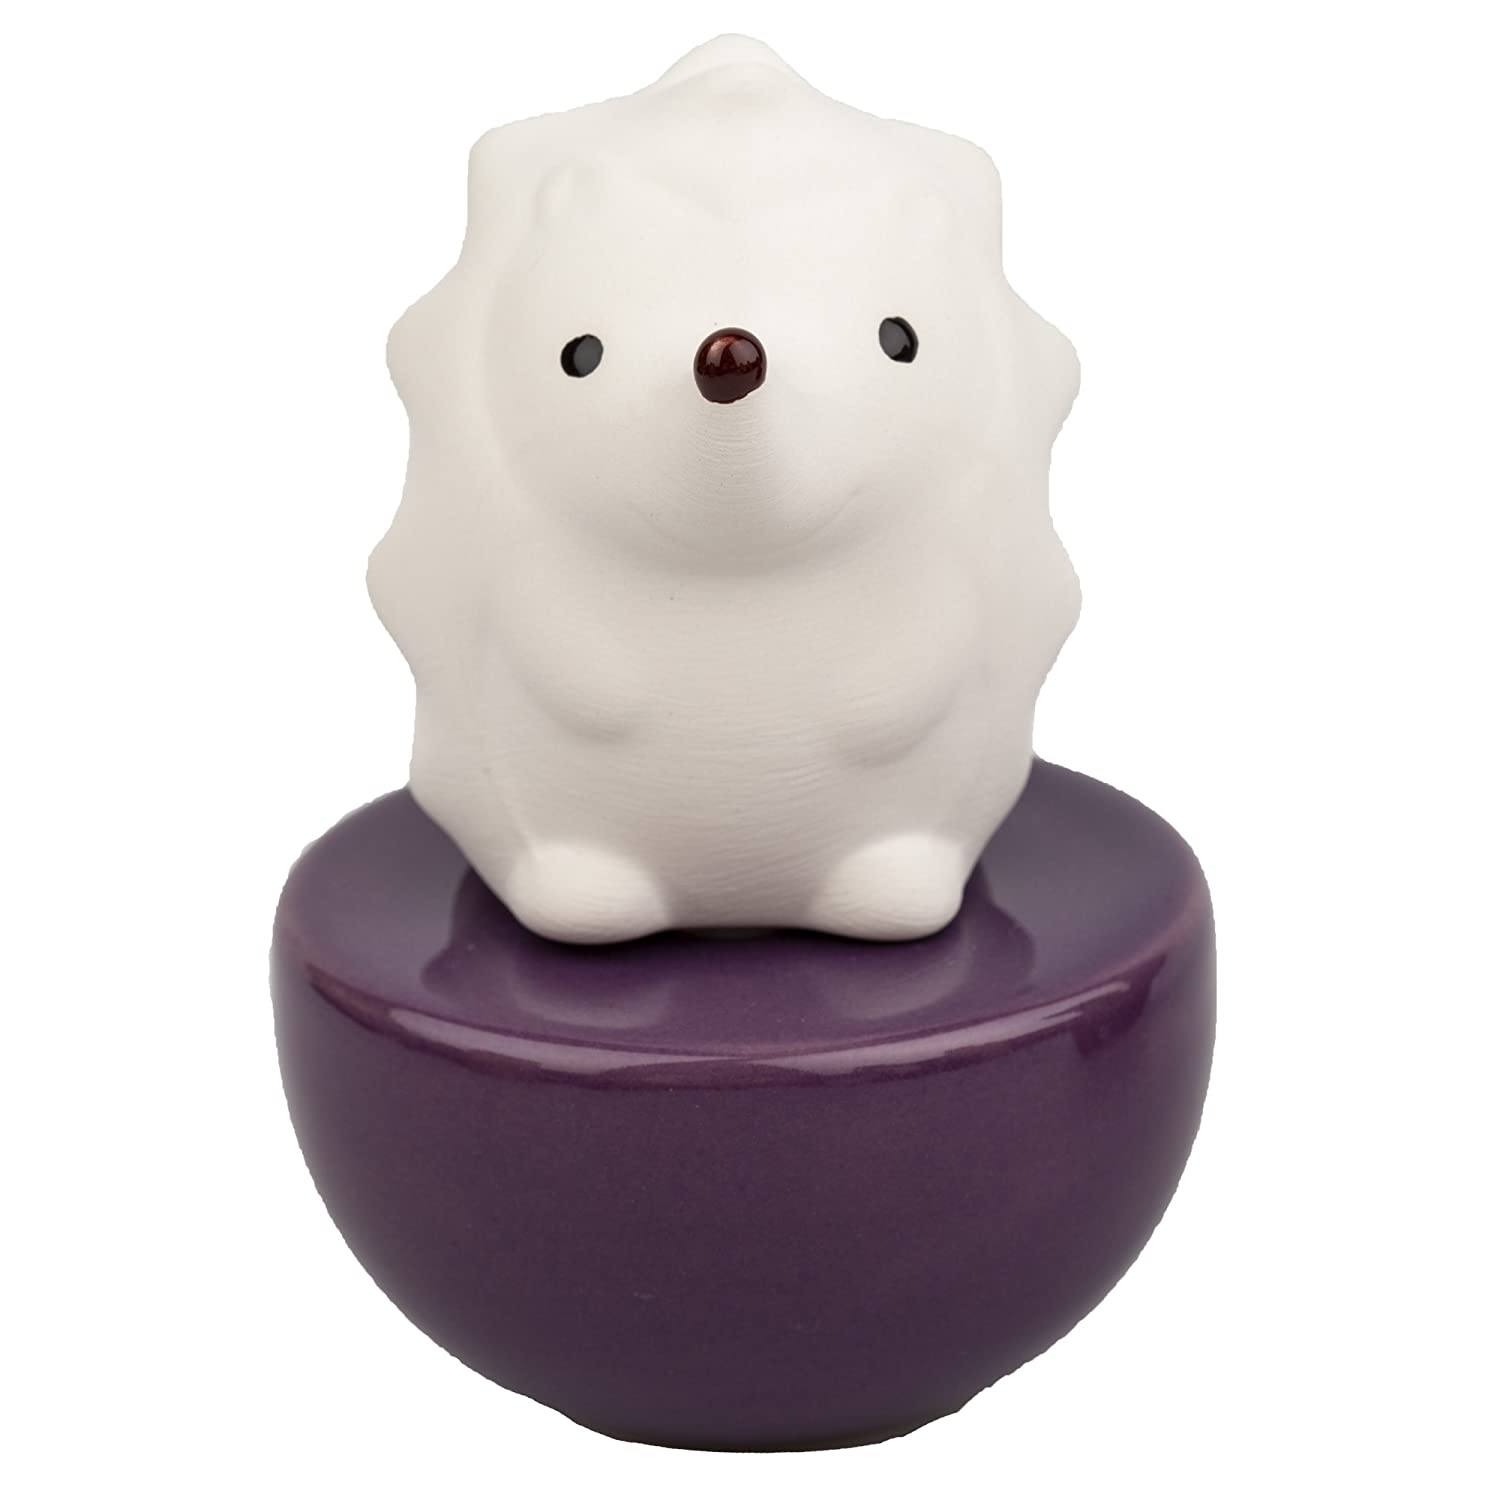 Lively Breeze Spiky Hedgehog, Non-Electric Ceramic Diffusers for Essential Oils and Aromatherapy Fragrance, White Ceramic Diffusers in Car or Desk Office Decor and Small Bathroom at Home, Purple Vase